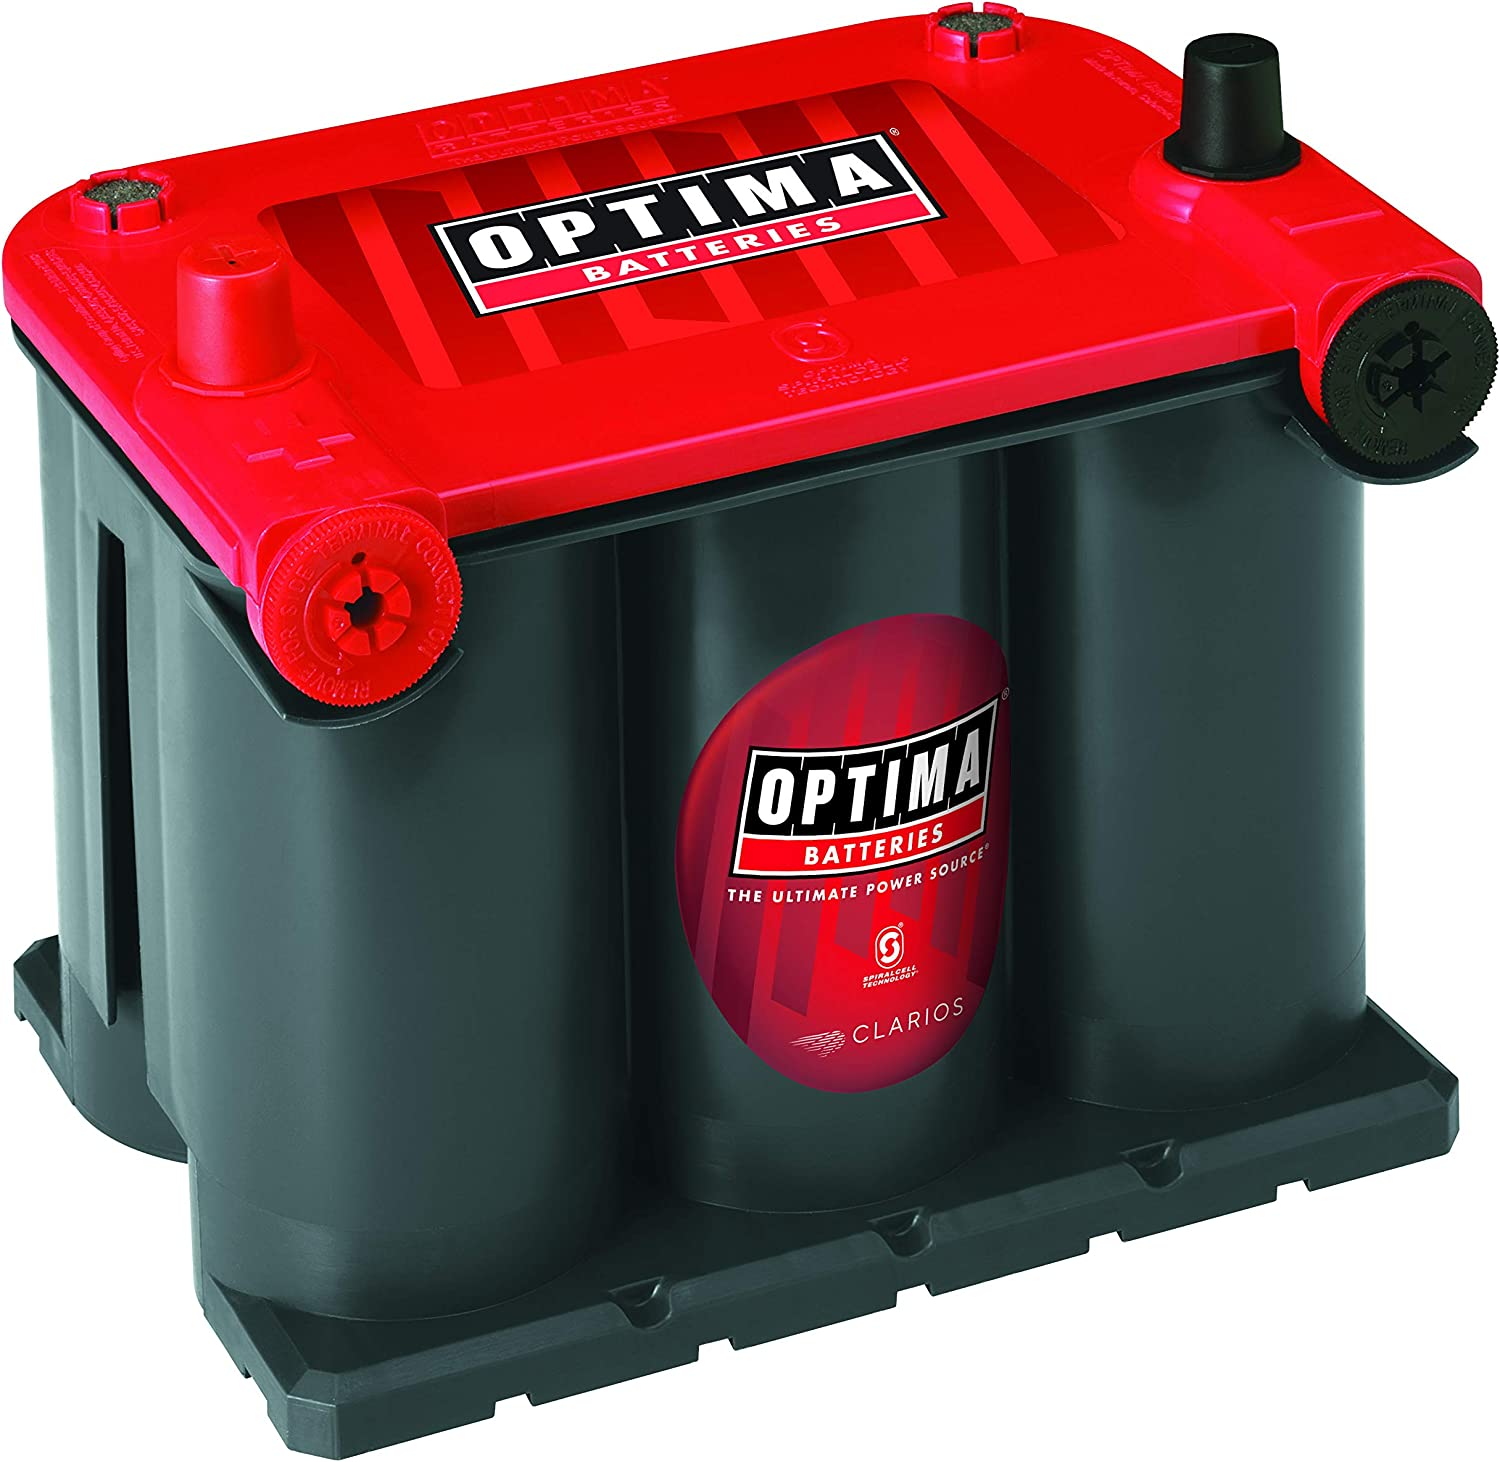 Optima Batteries RedTop Starting Battery